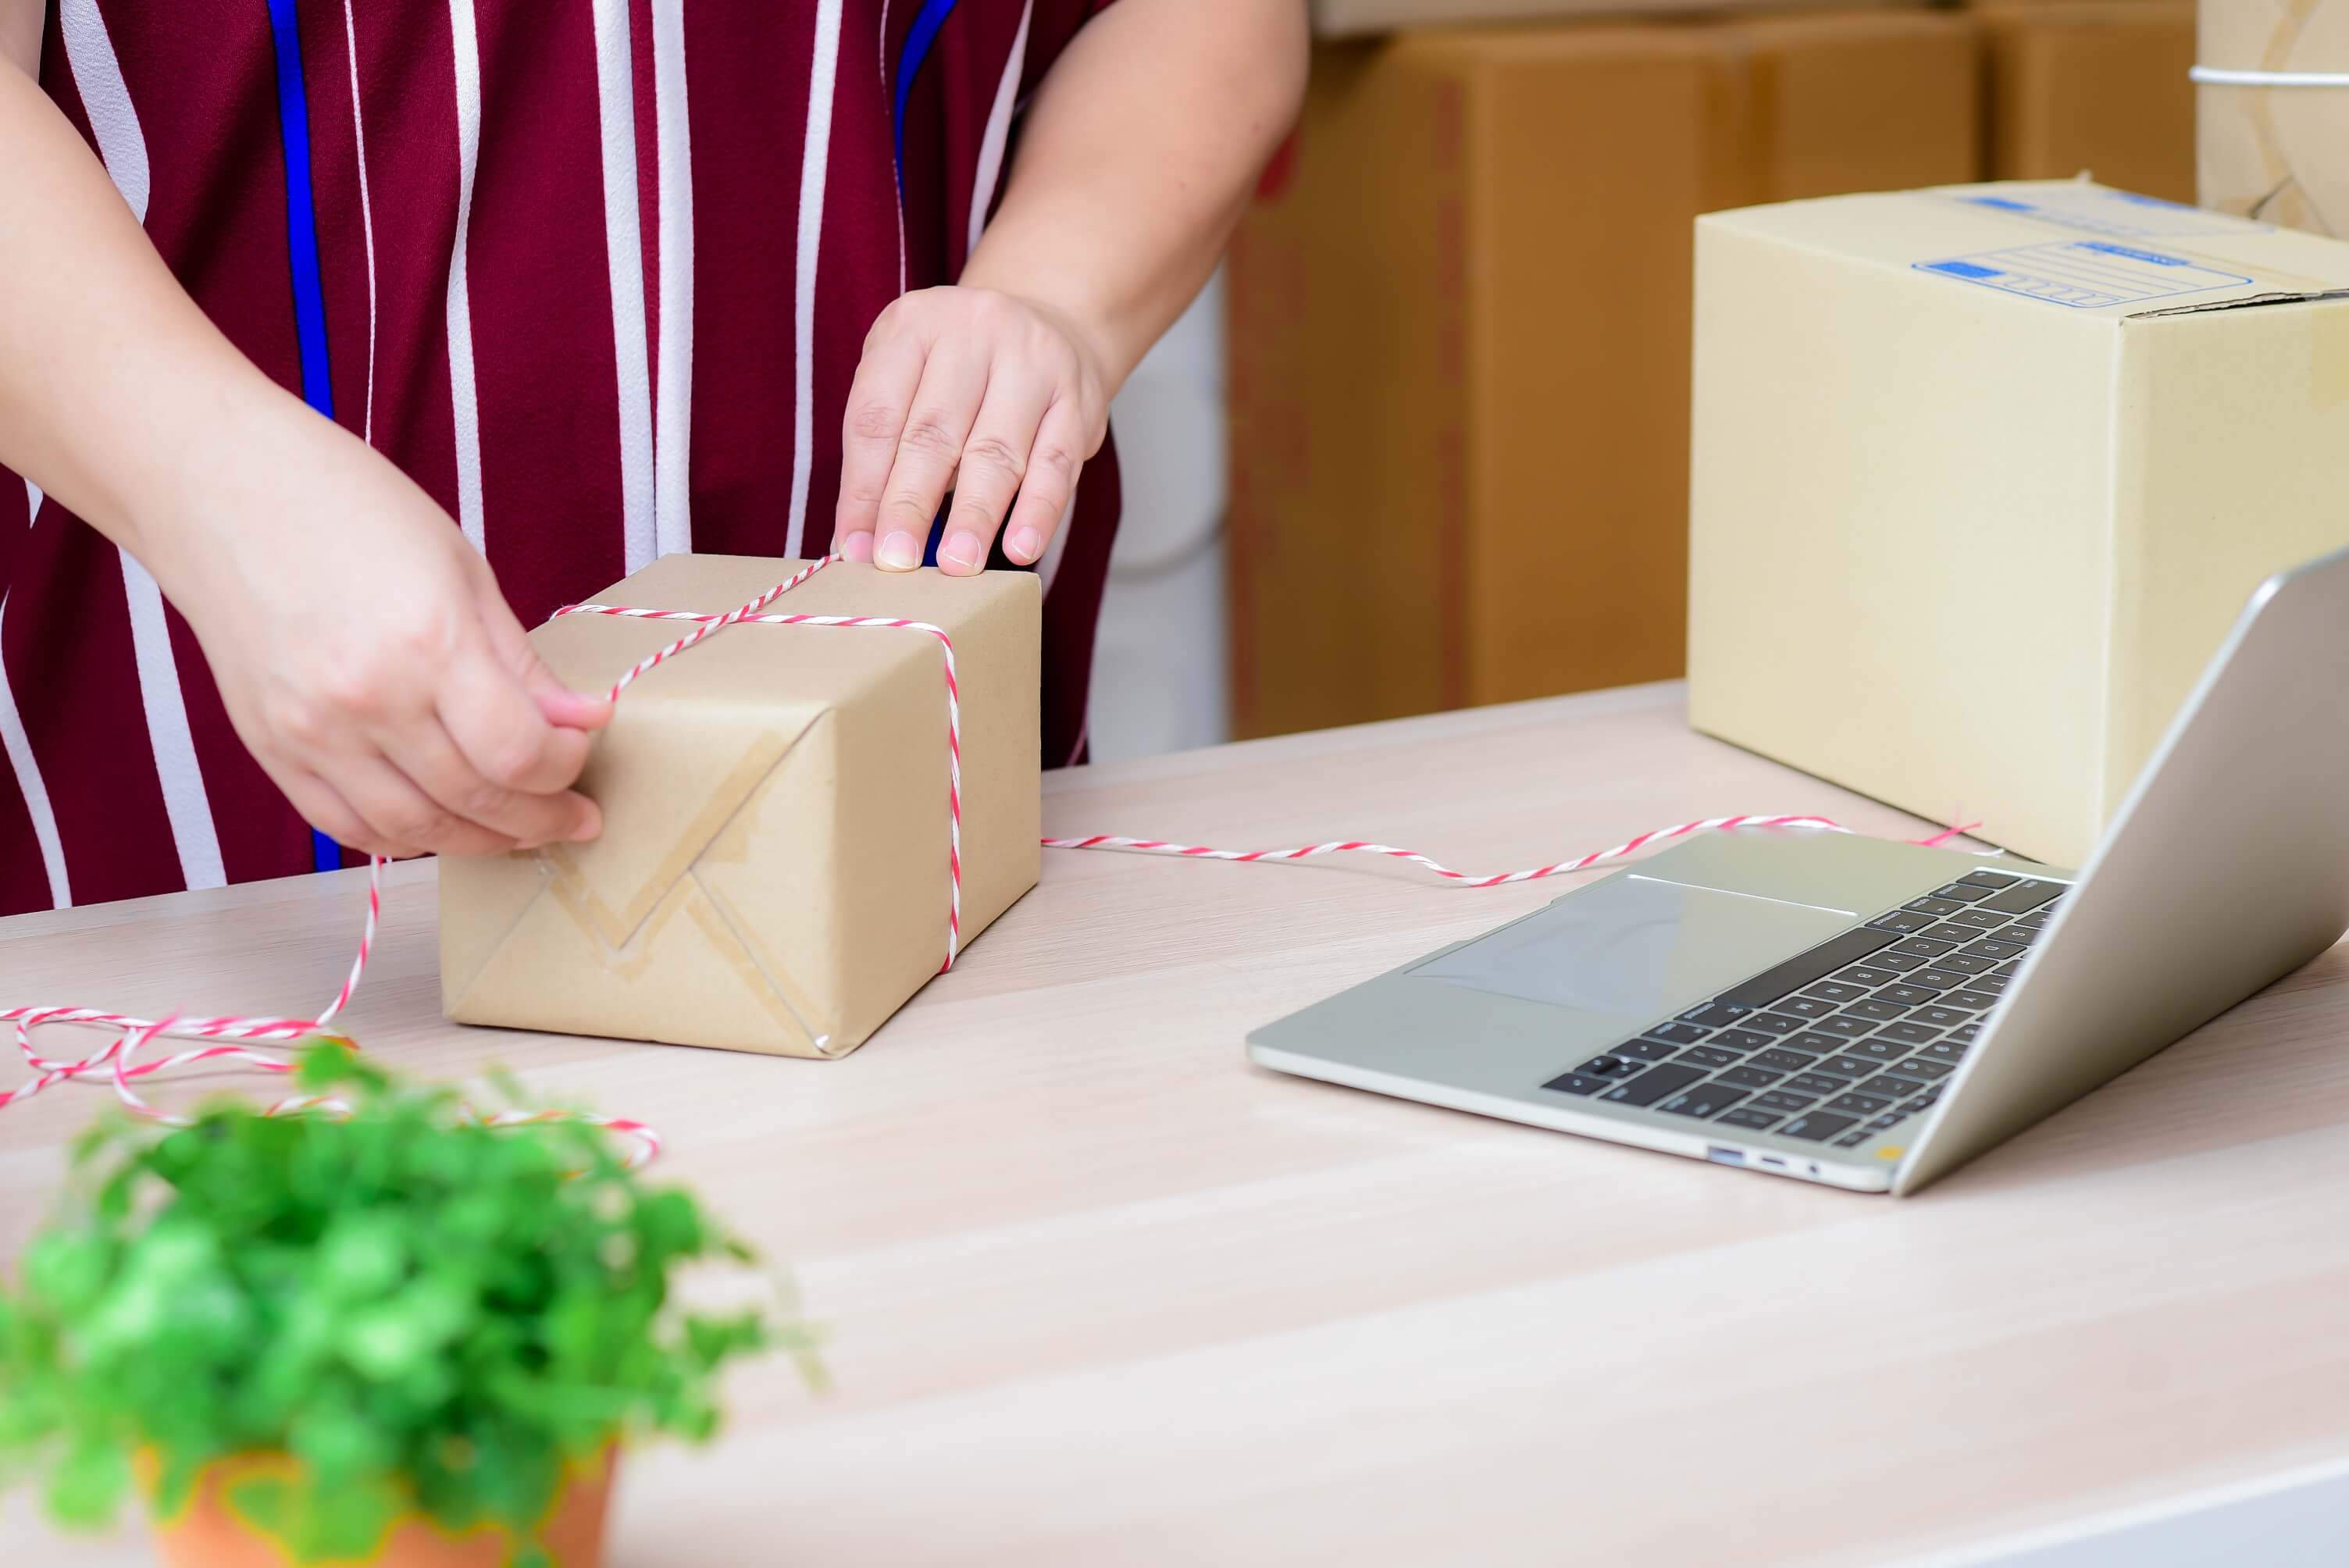 Your Product Packaging Should Do These 4 Things